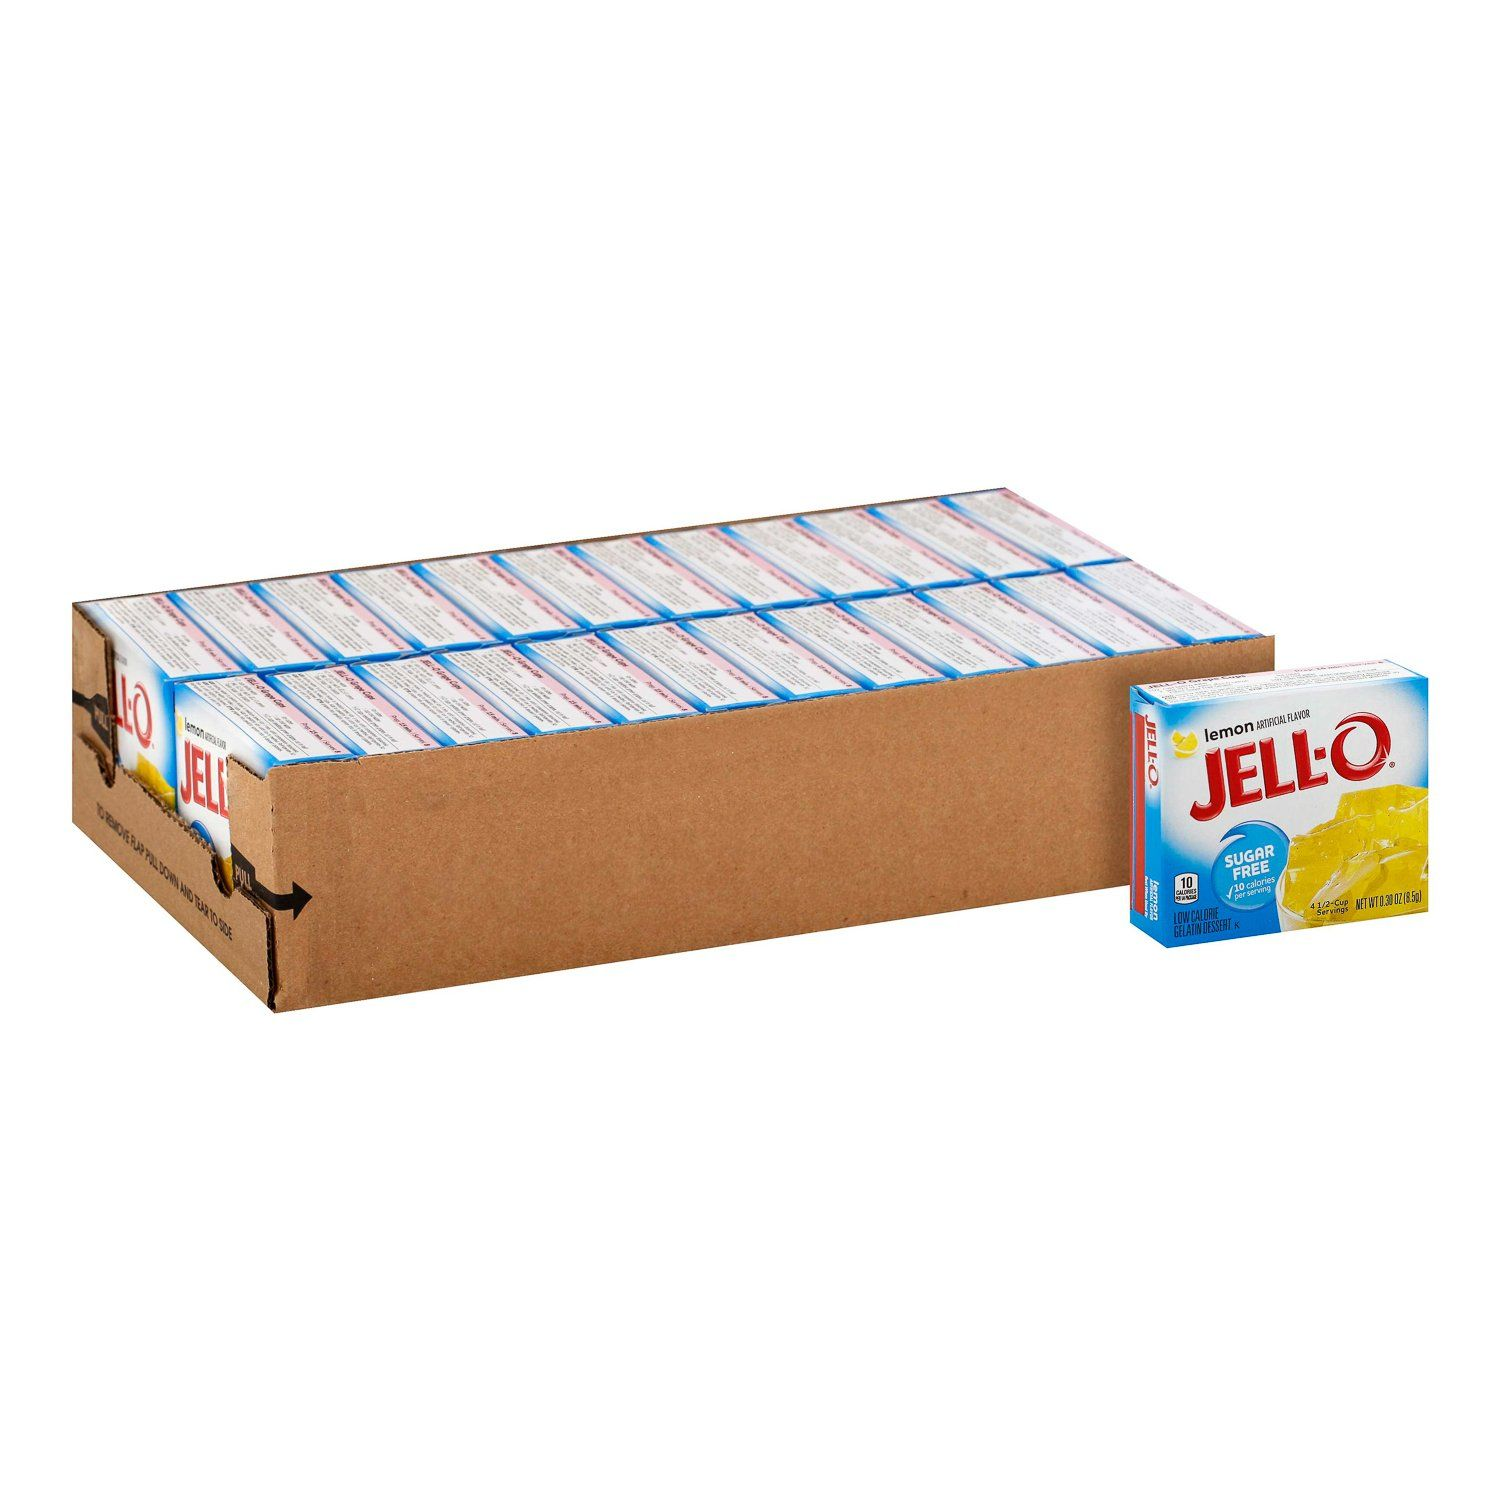 Jell-O Gelatin Mix Sugar Free Jell-O Sugar Free Lemon 0.3 Oz-24 Count